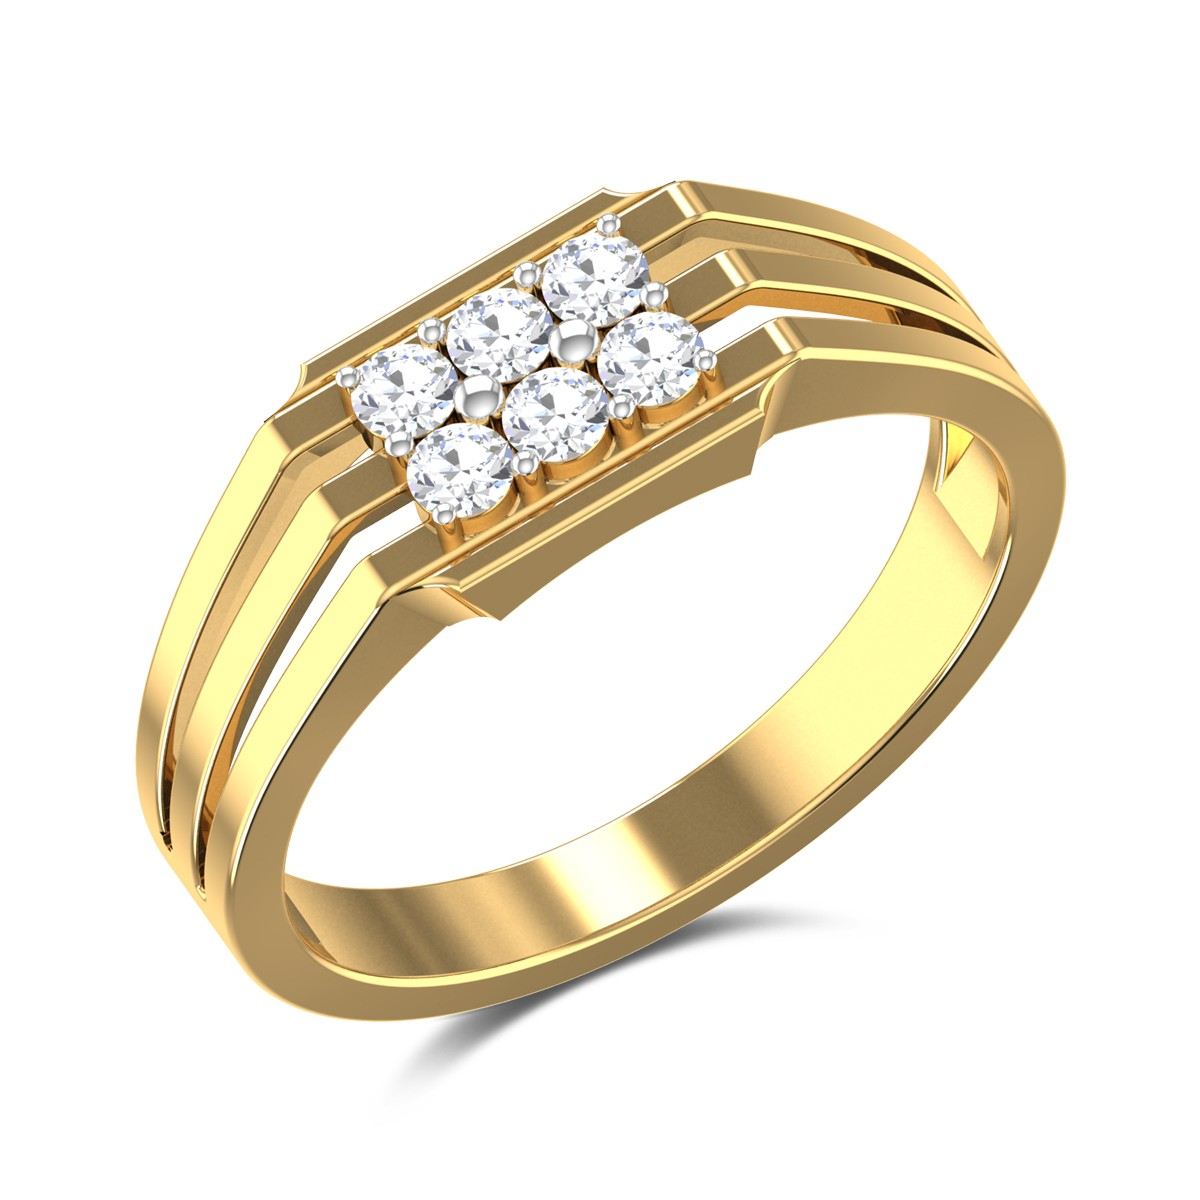 Kylah Diamond Ring